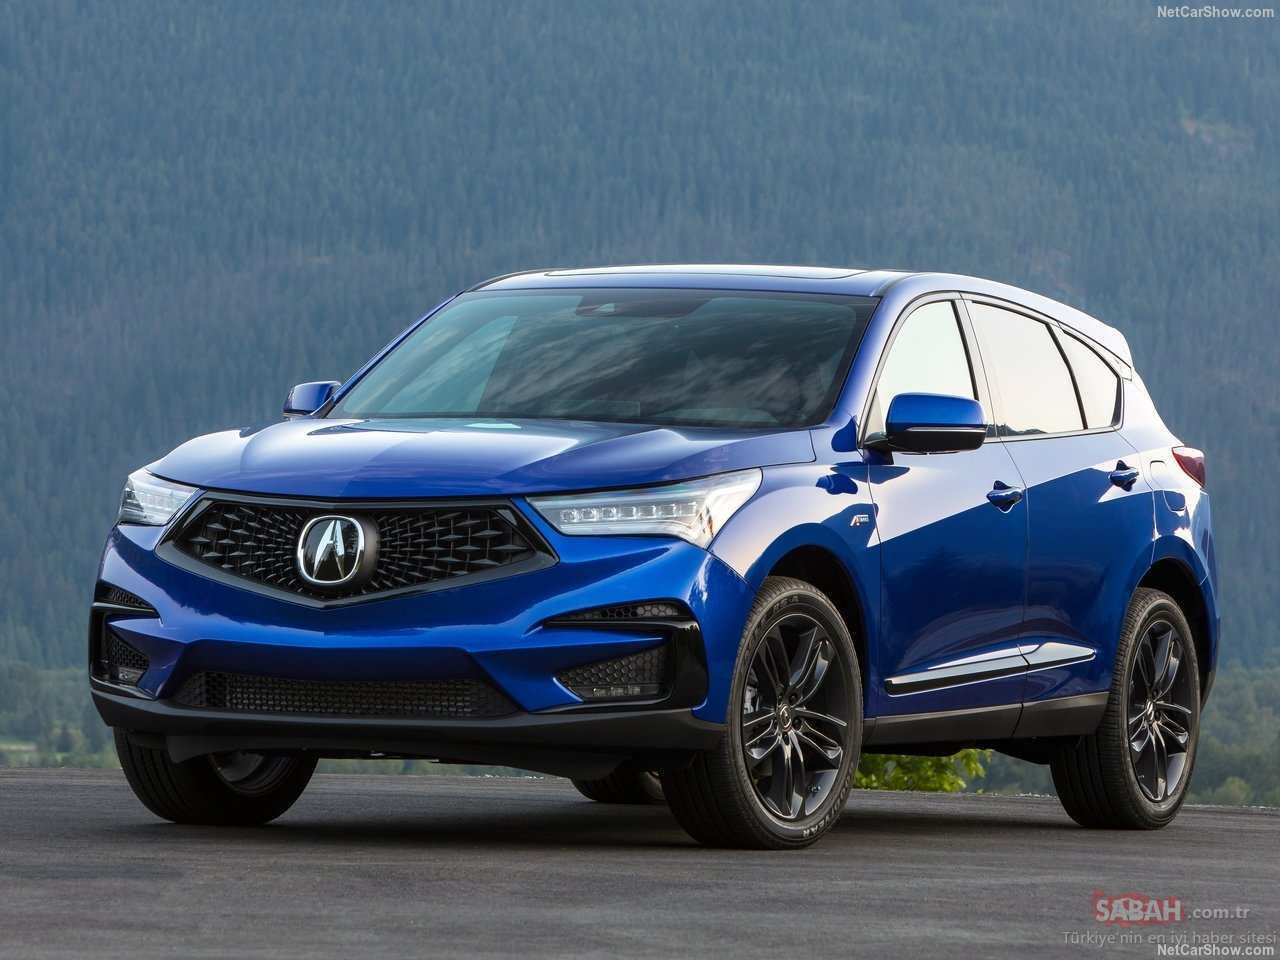 96 The 2019 Acura Rdx Preview Release Date